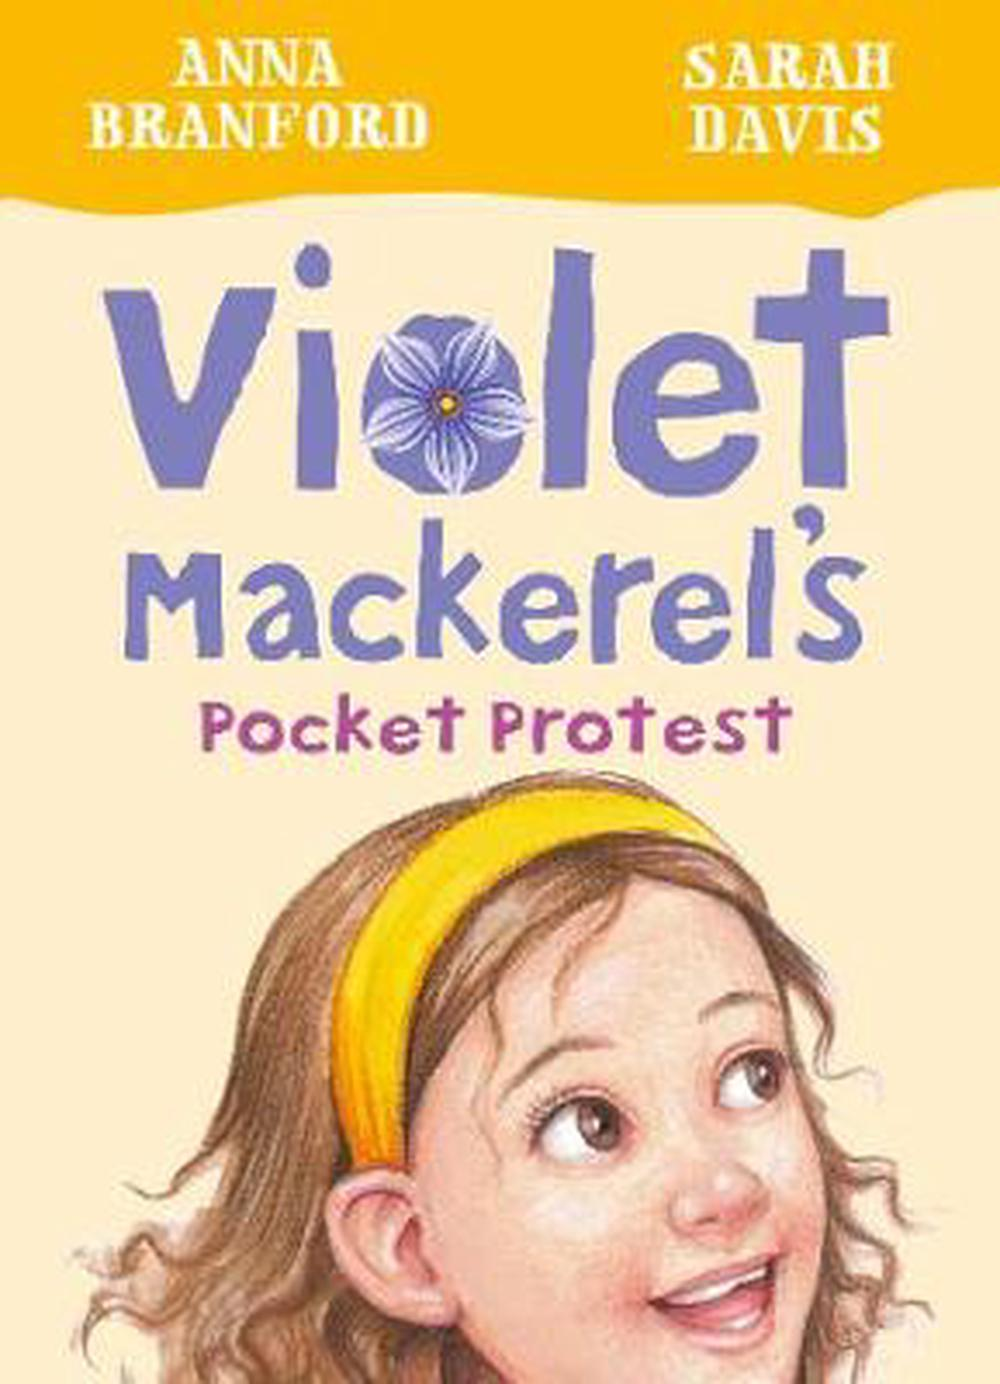 Violet Mackerel's Pocket Protest (Book 6) by Branford Anna Paperback Book Free S